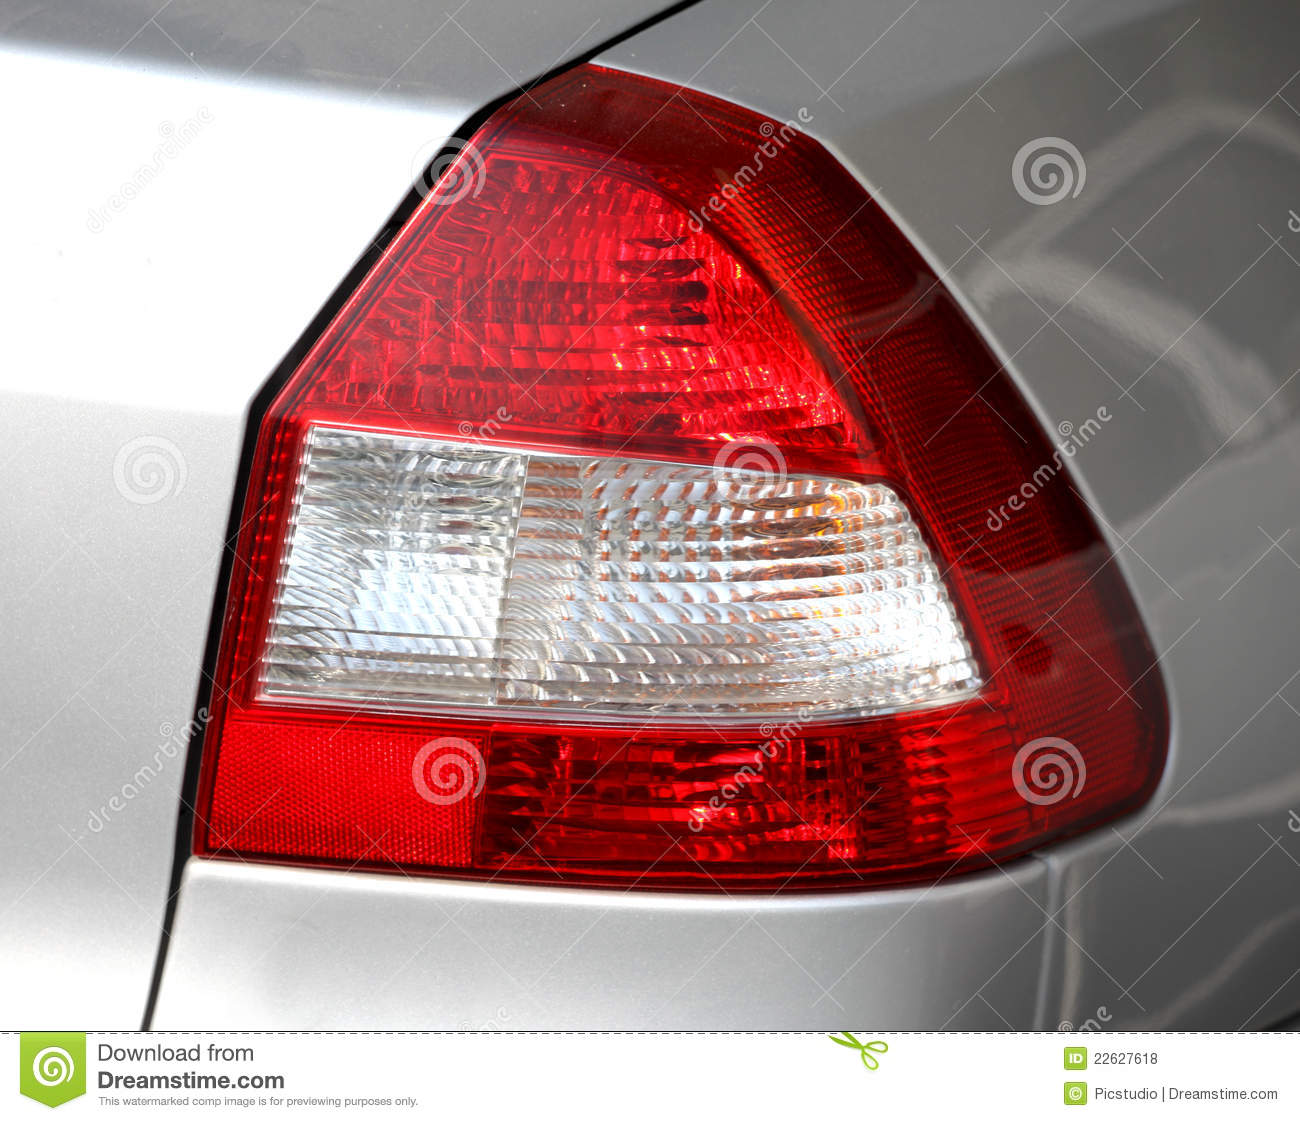 Red car light clipart.